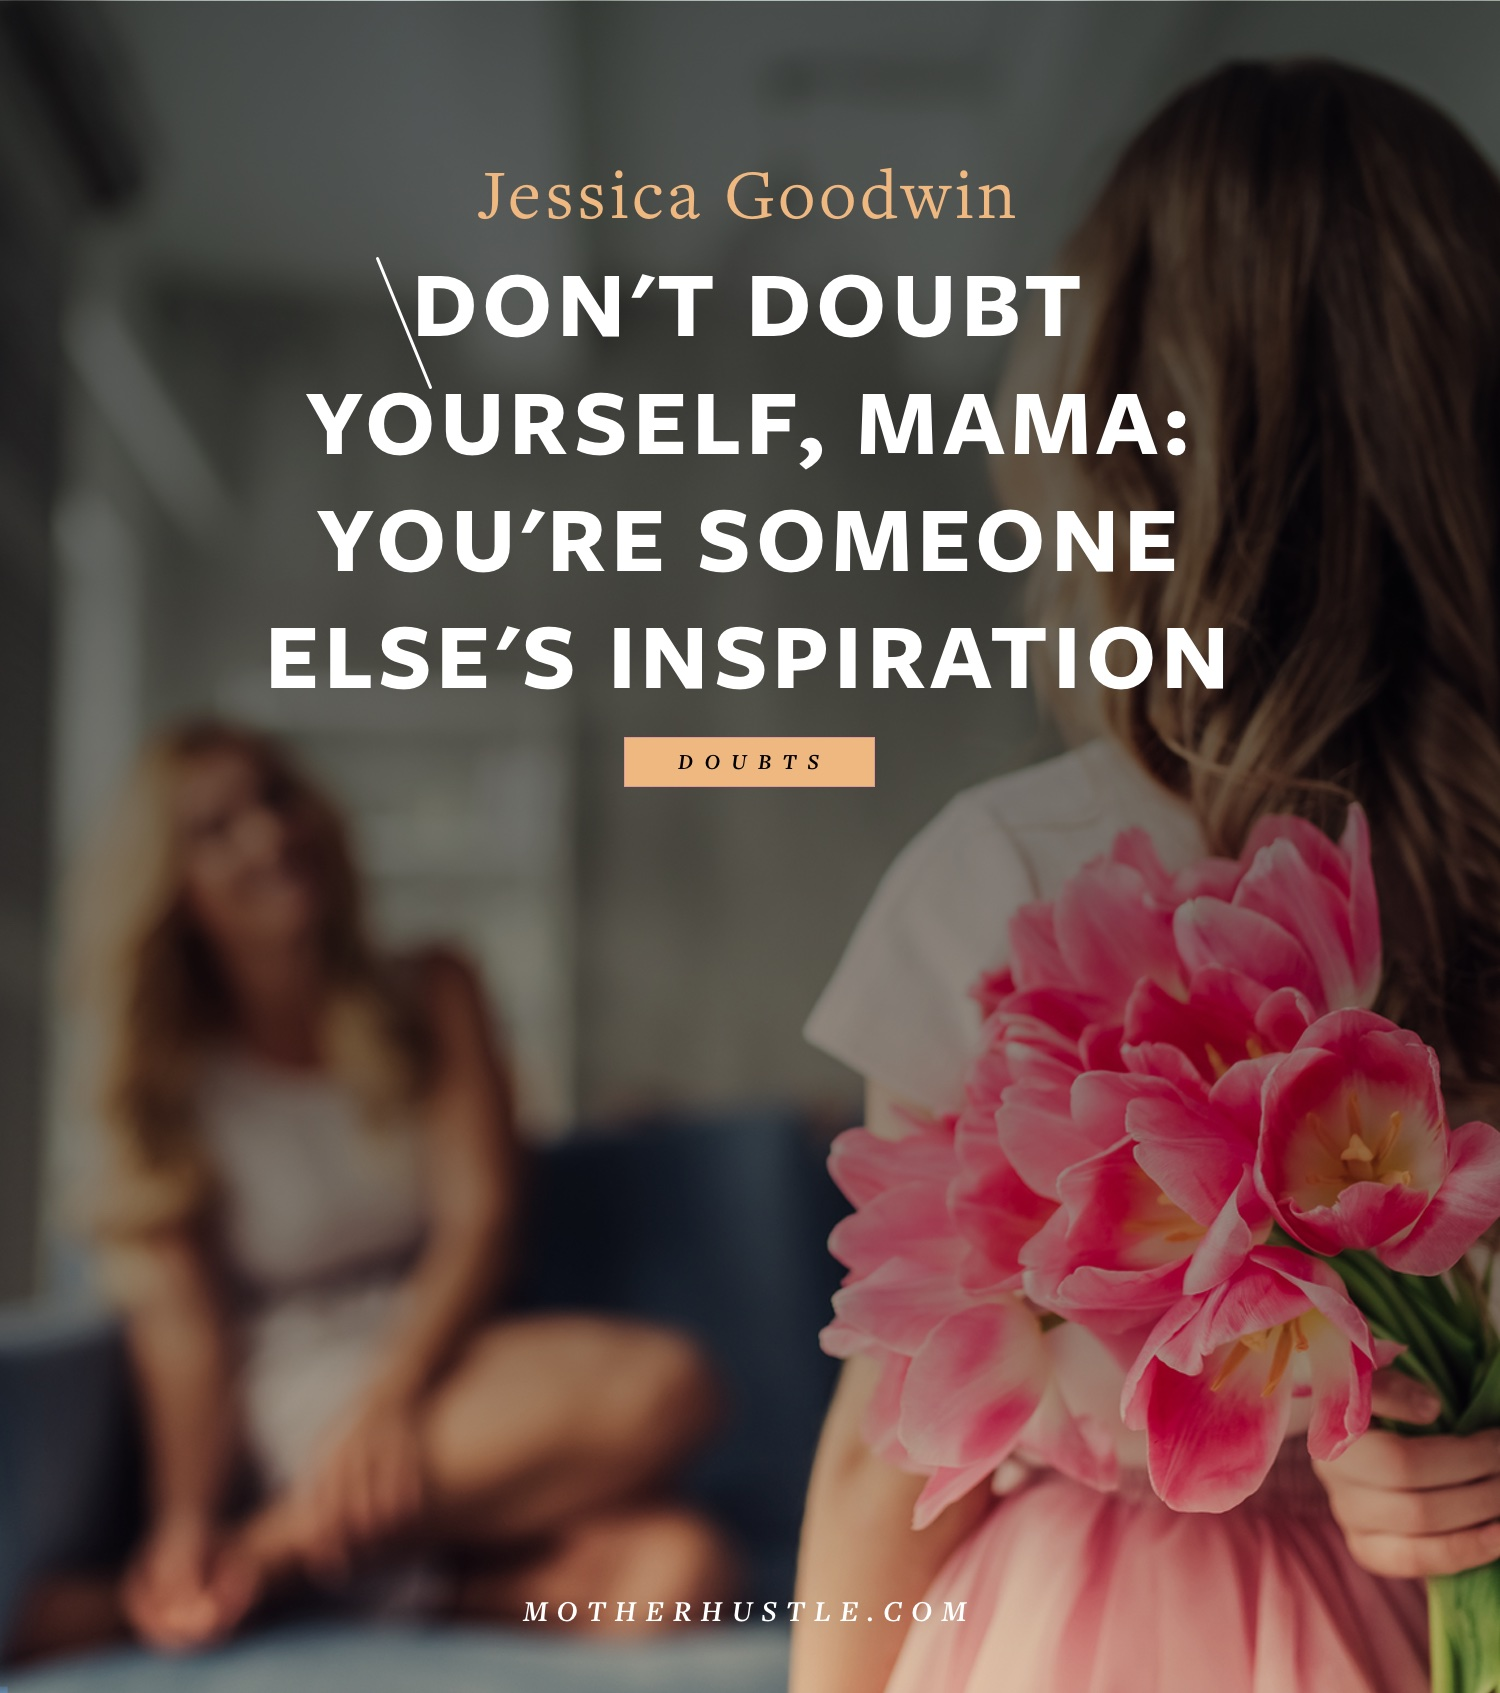 Don't Doubt Yourself, Mama- You're Someone Else's Inspiration - by Jessica Goodwin for MotherHustle